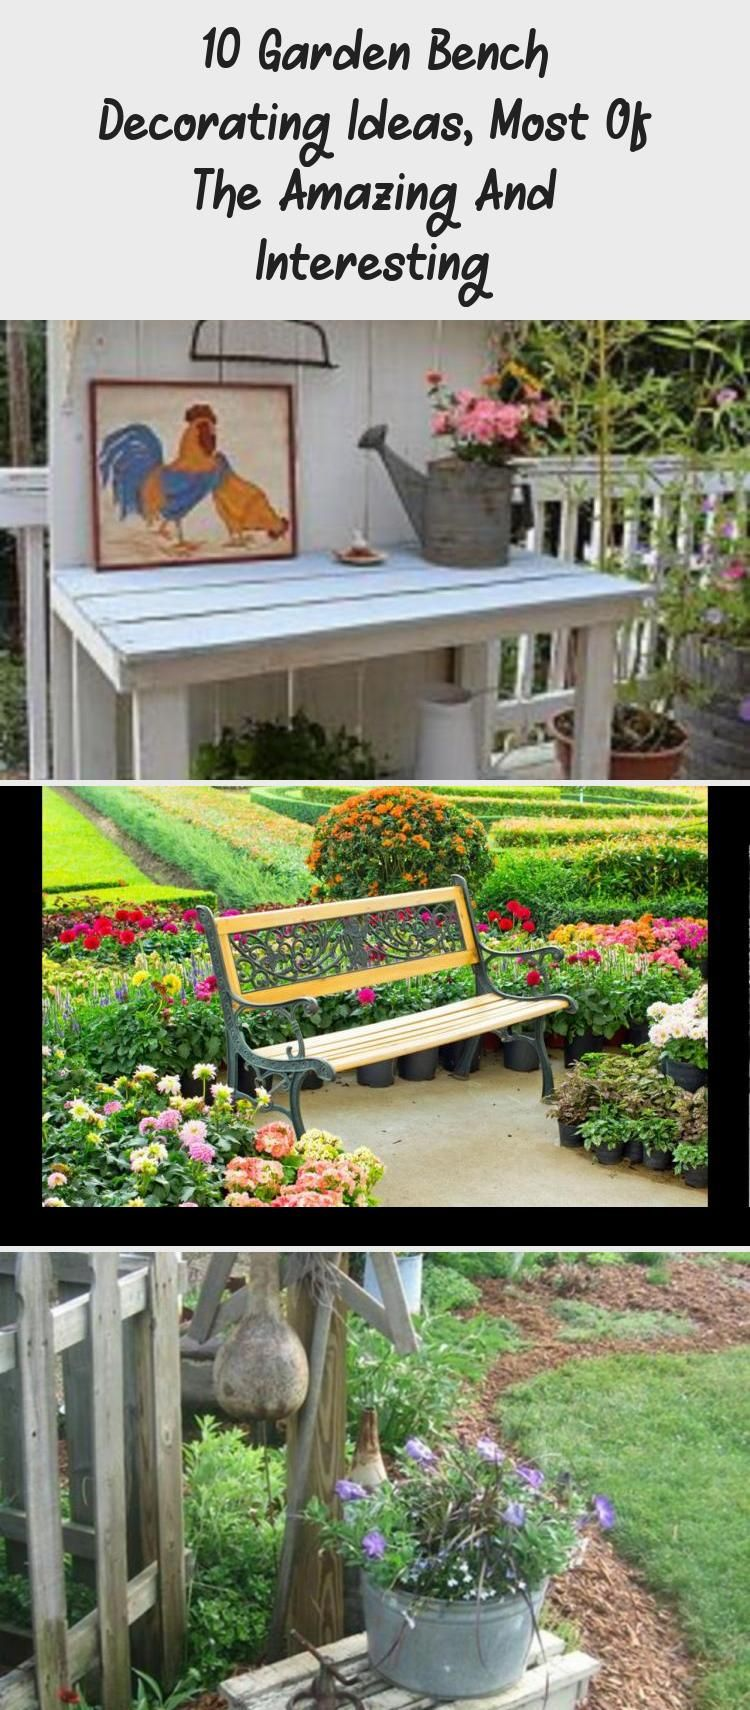 10 Garden Bench Decorating Ideas Most Of The Amazing And